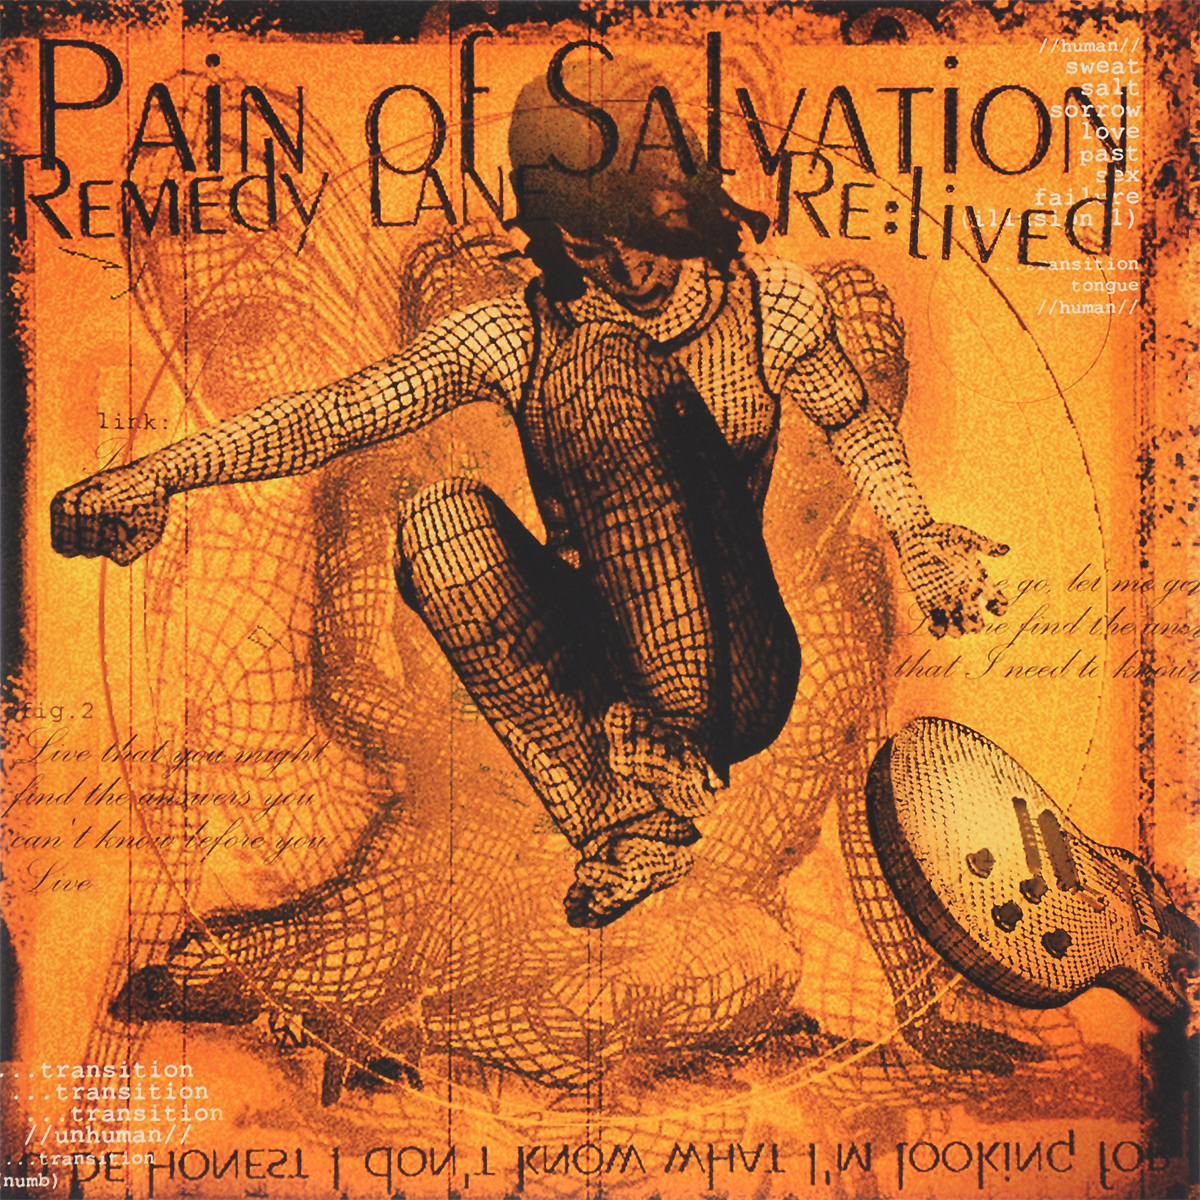 Pain Of Salvation Pain Of Salvation. Remedy Lane Re:Lived (2 LP + CD) pain of salvation pain of salvation remedy lane re lived 2 lp cd